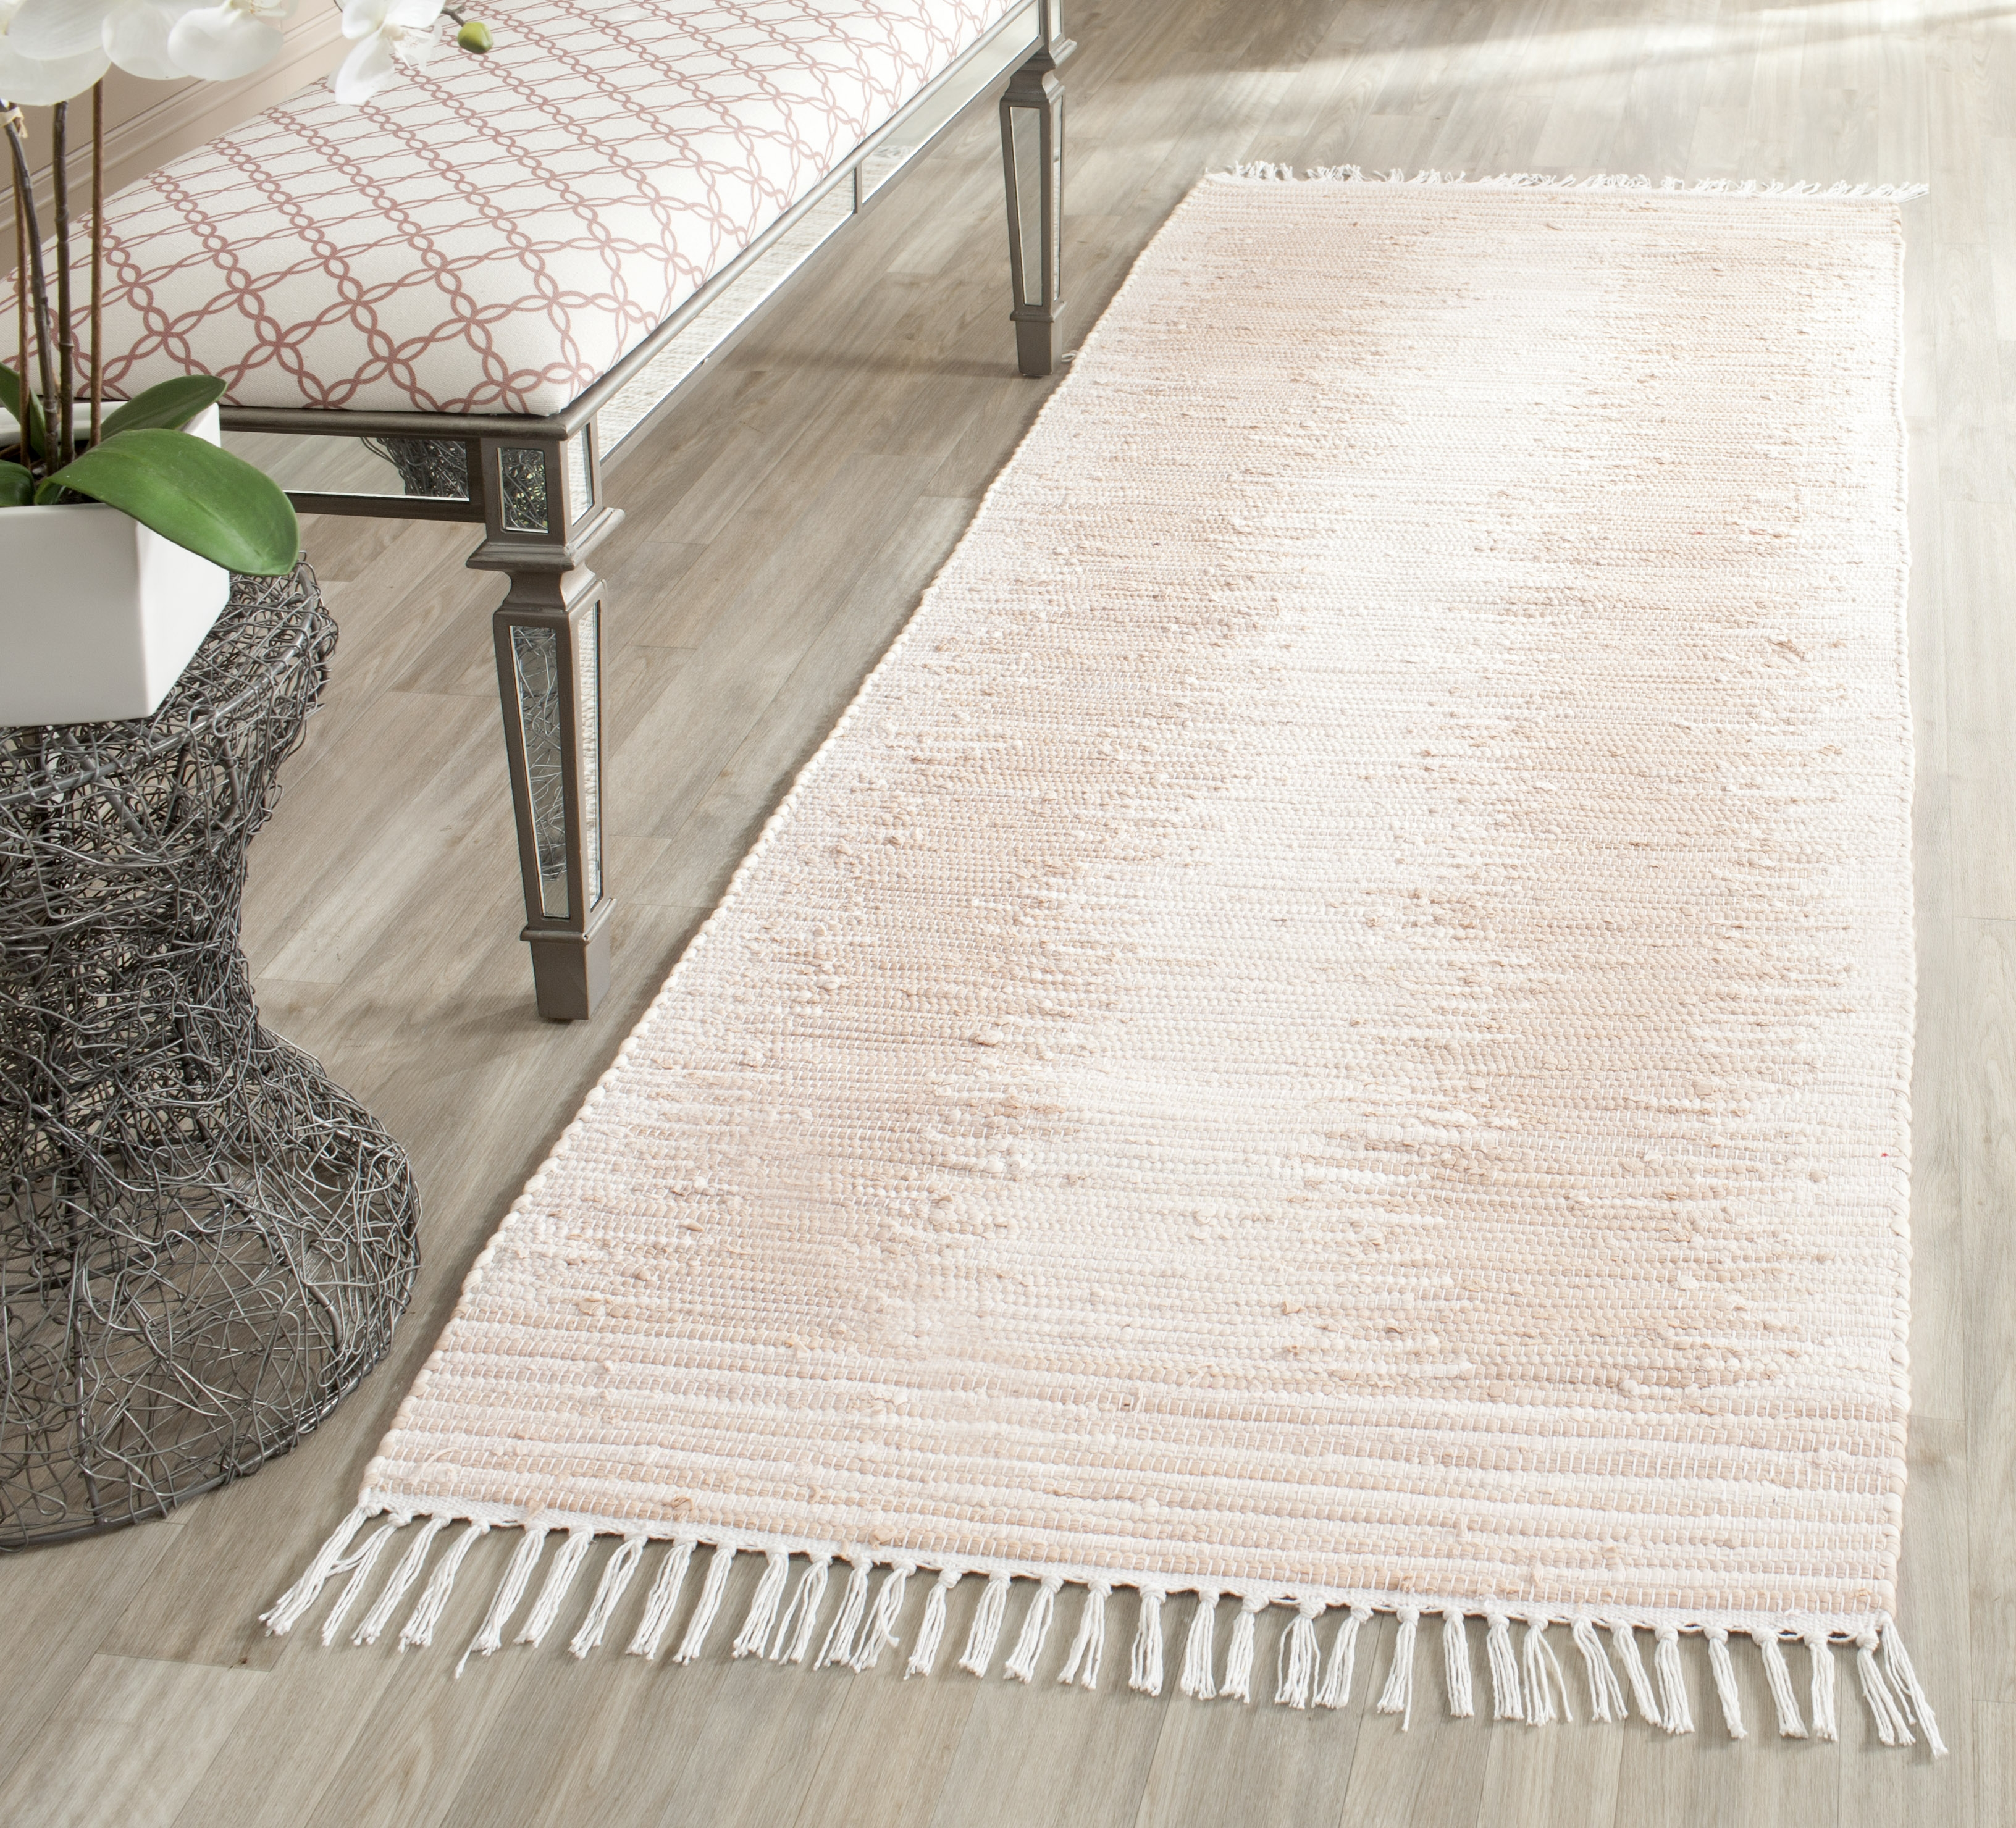 Flat Weave Area Rugs Roselawnlutheran With Wool Flat Weave Area Rugs (#3 of 15)